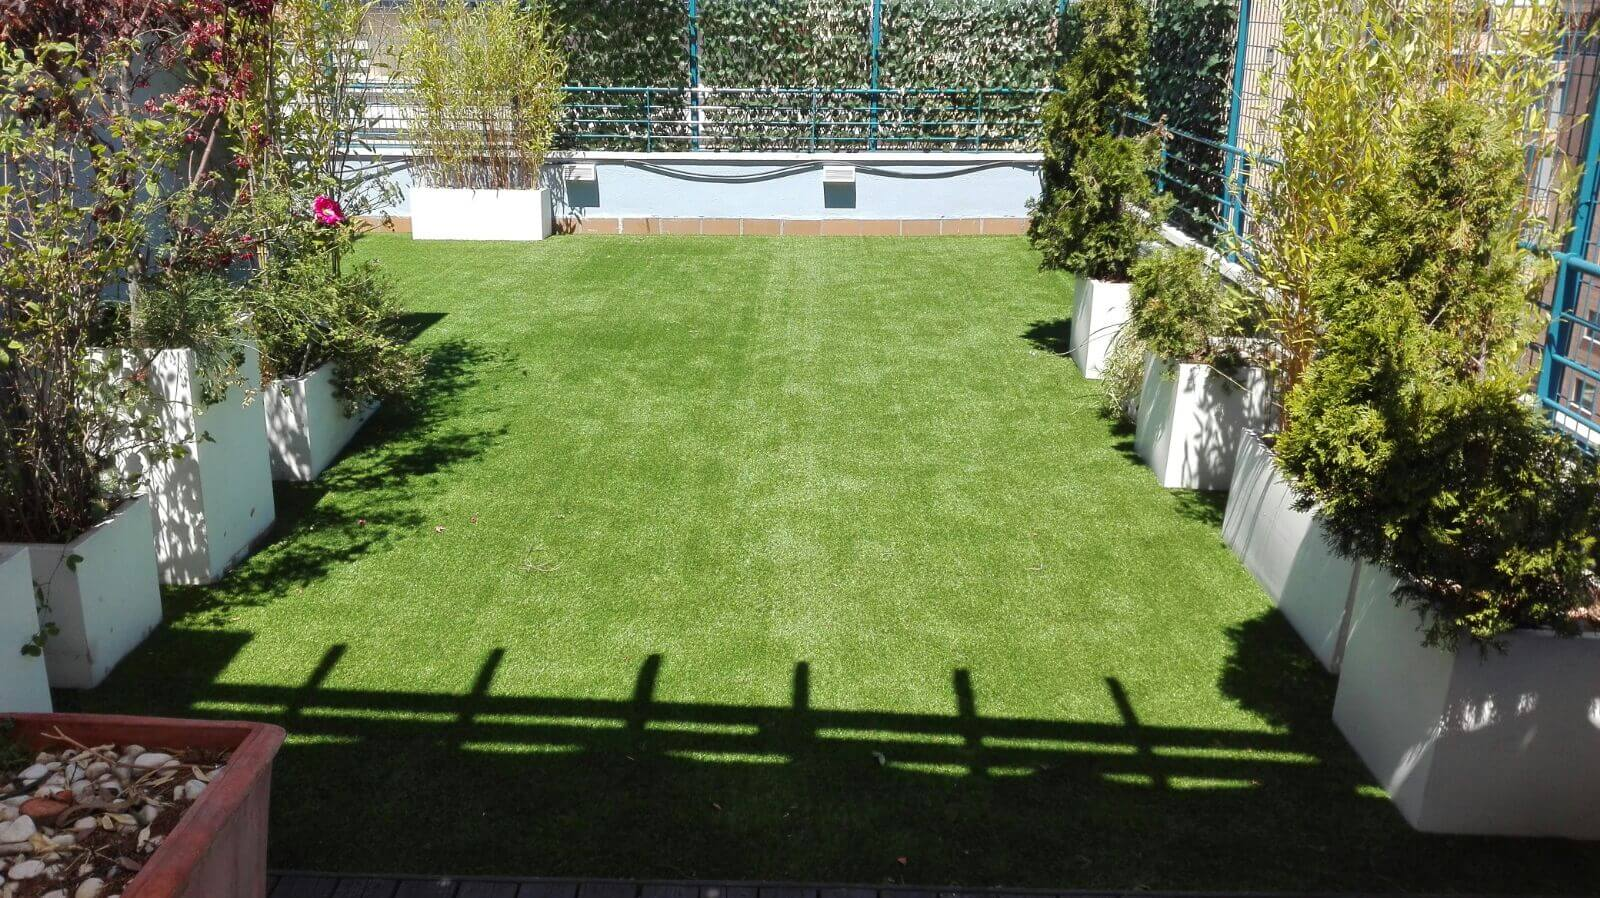 Instalaci n de c sped artificial living grass silk para terraza en madrid - Cesped artificial terraza ...